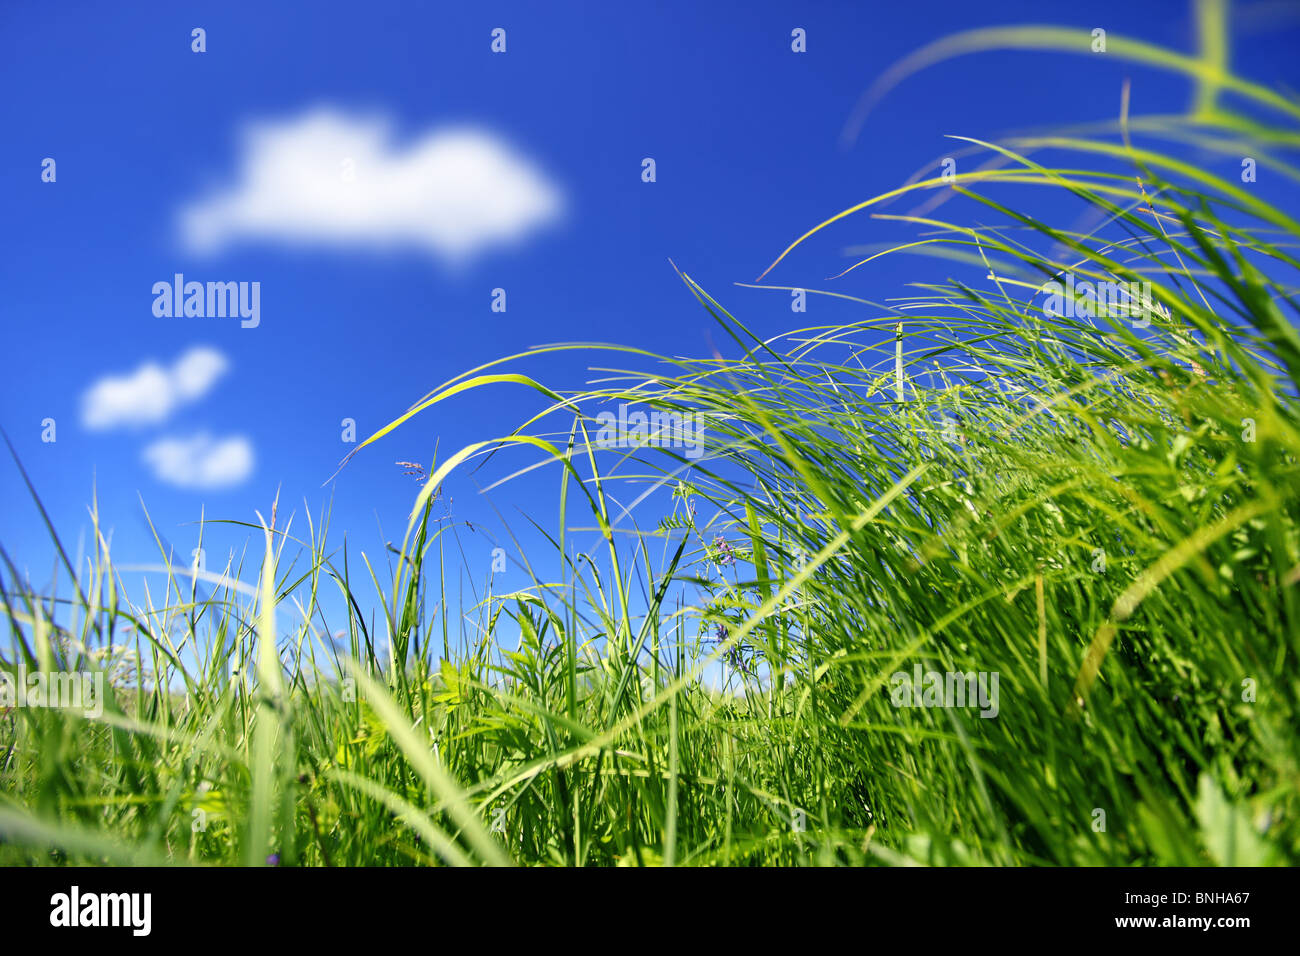 Outdoor wild grass. - Stock Image